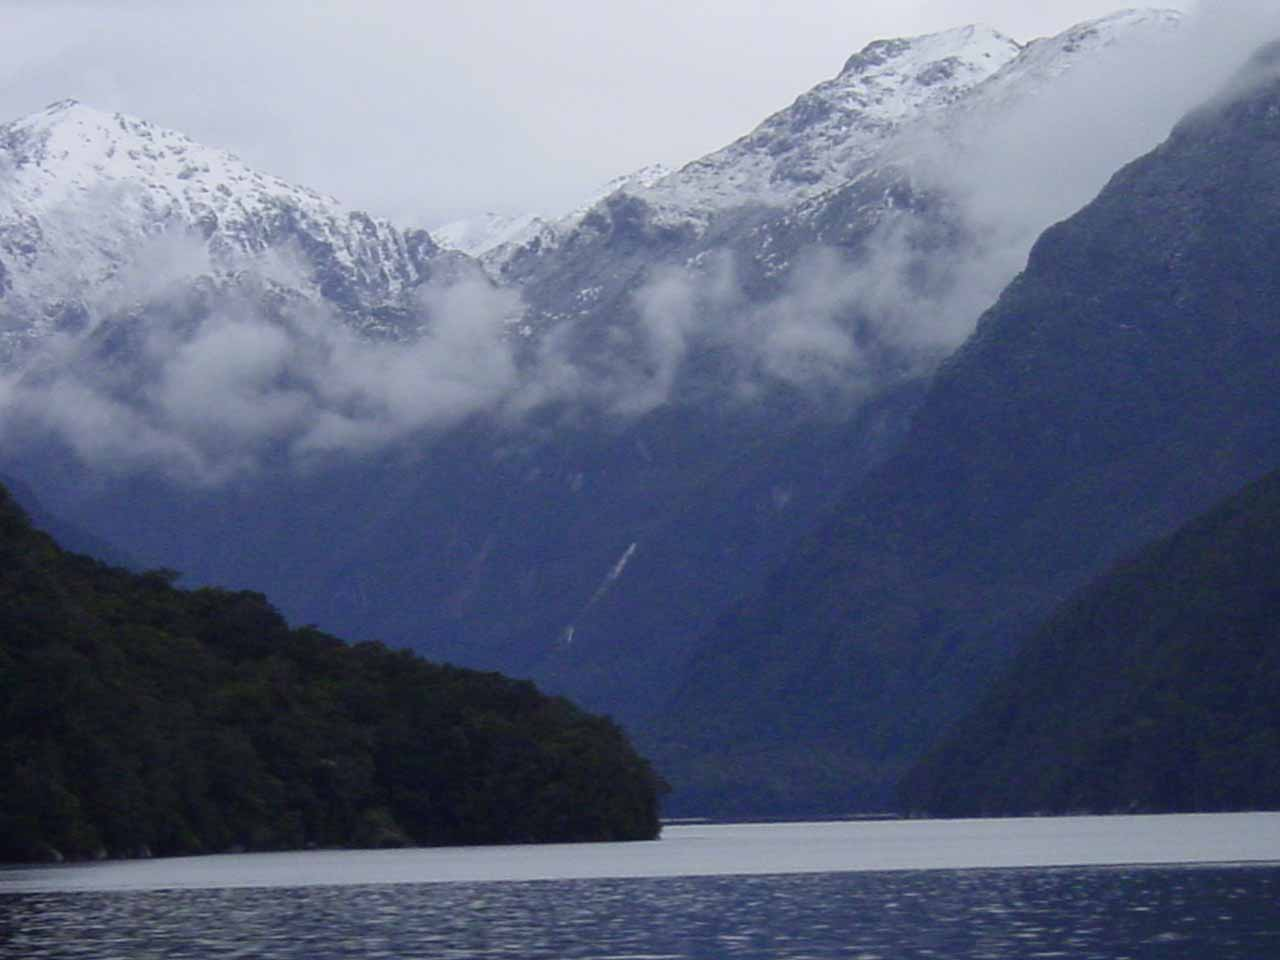 Looking in the distance towards some thin cascade off in the distance while on Lake Manapouri